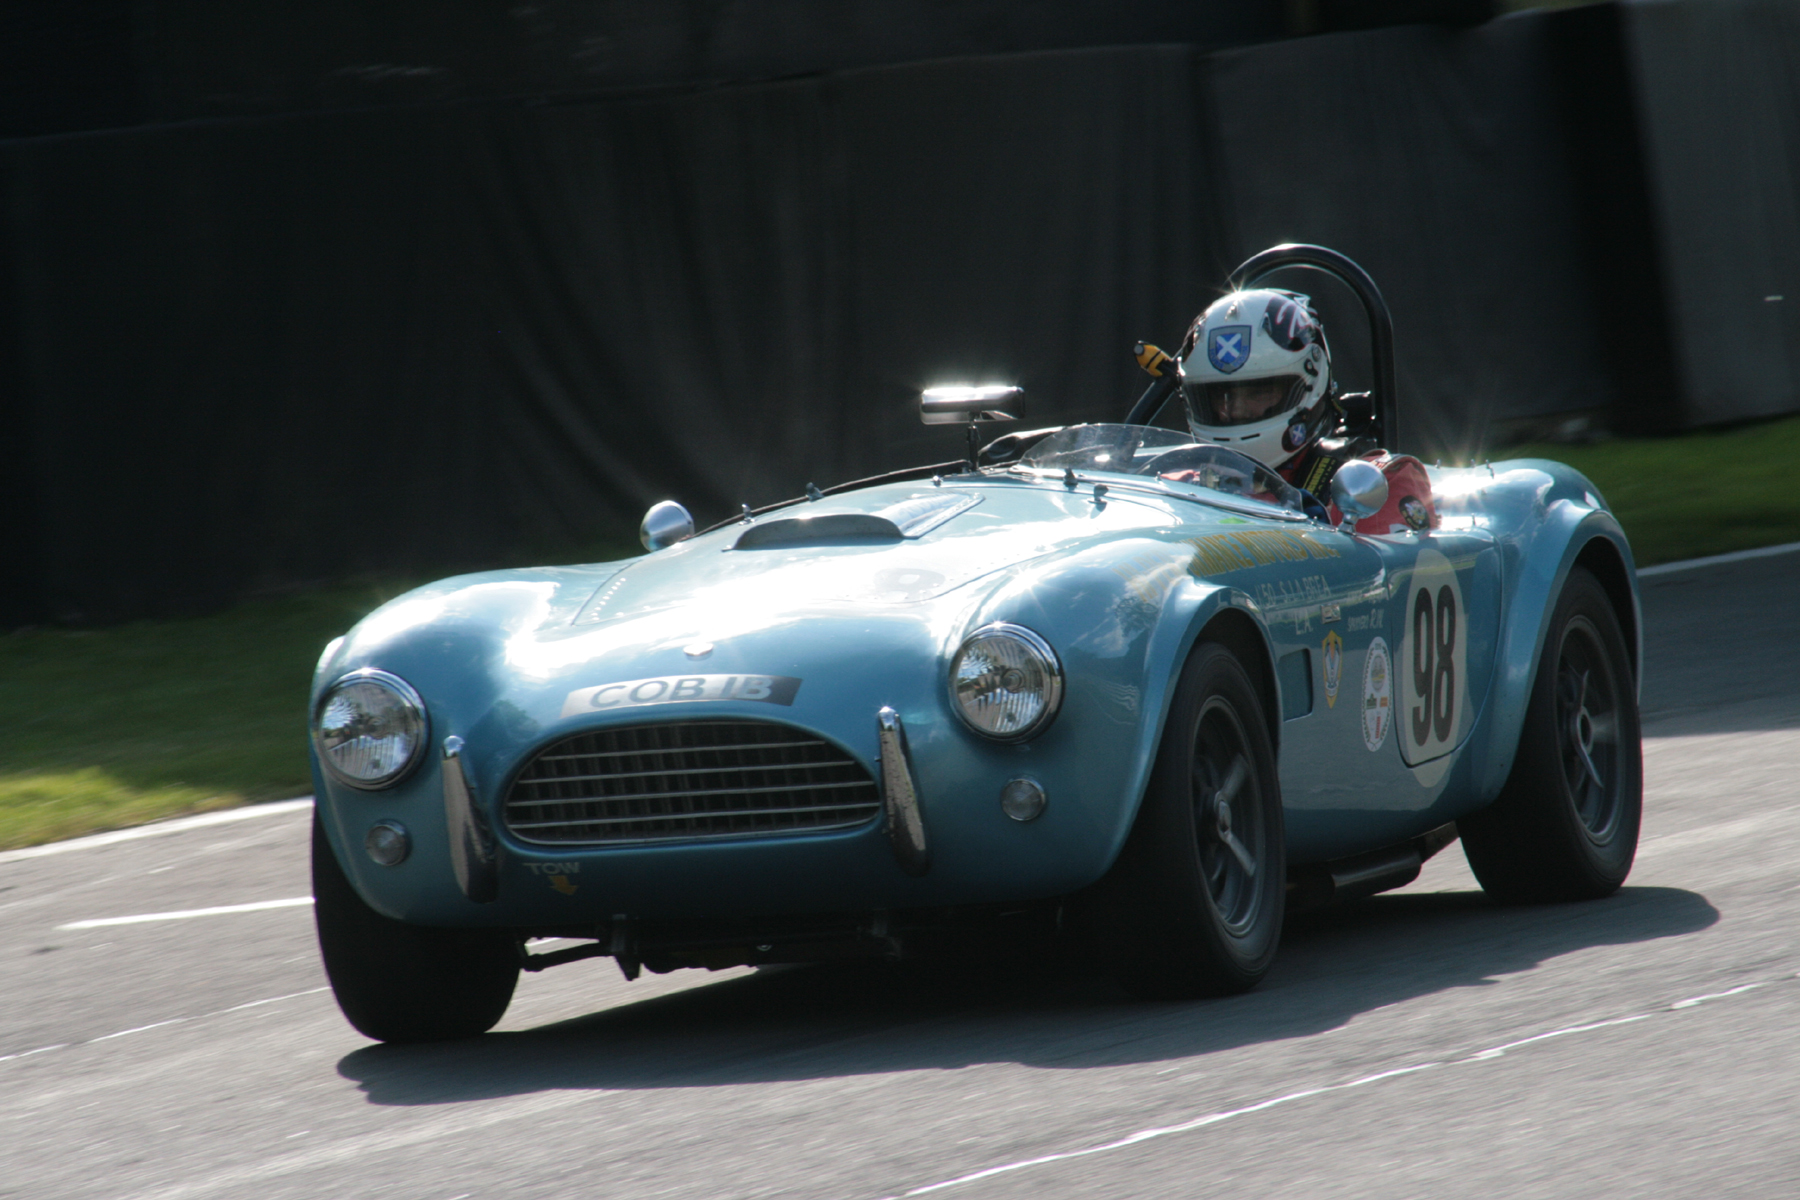 Kevin Kivlochan's Cobra. Whilst not a FISCAR car, Kevin is an AC Ace owning member